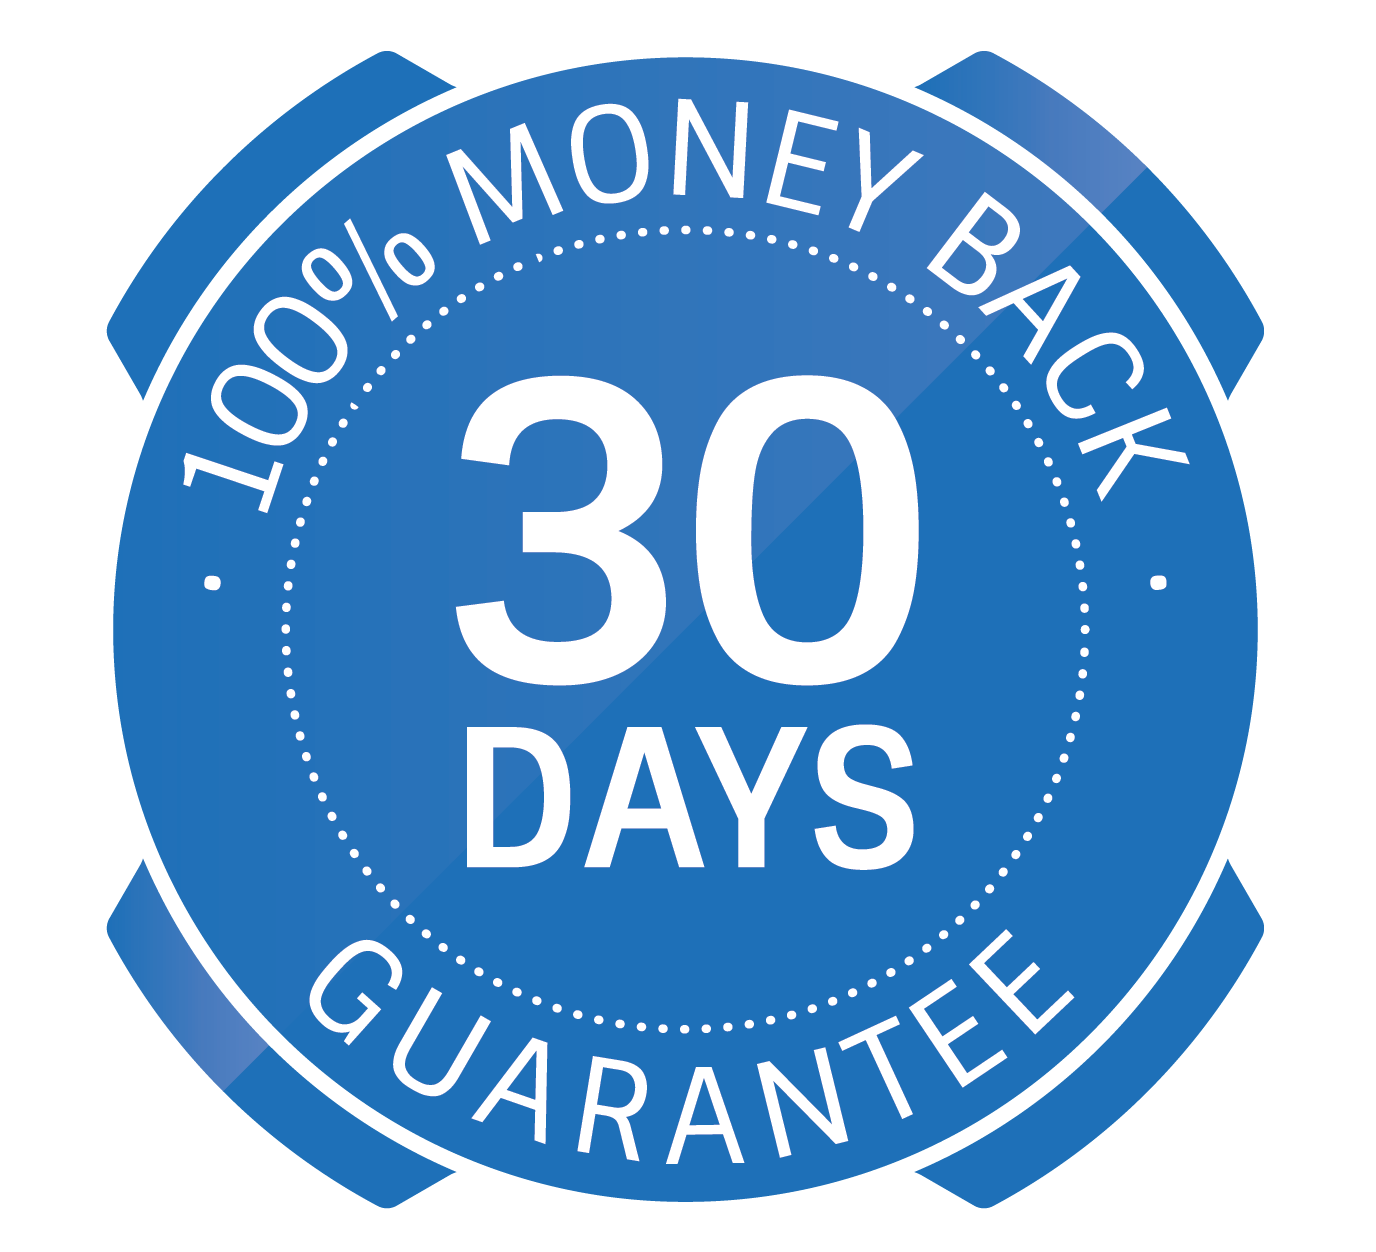 30 day money back guarantee png. Transparent images all